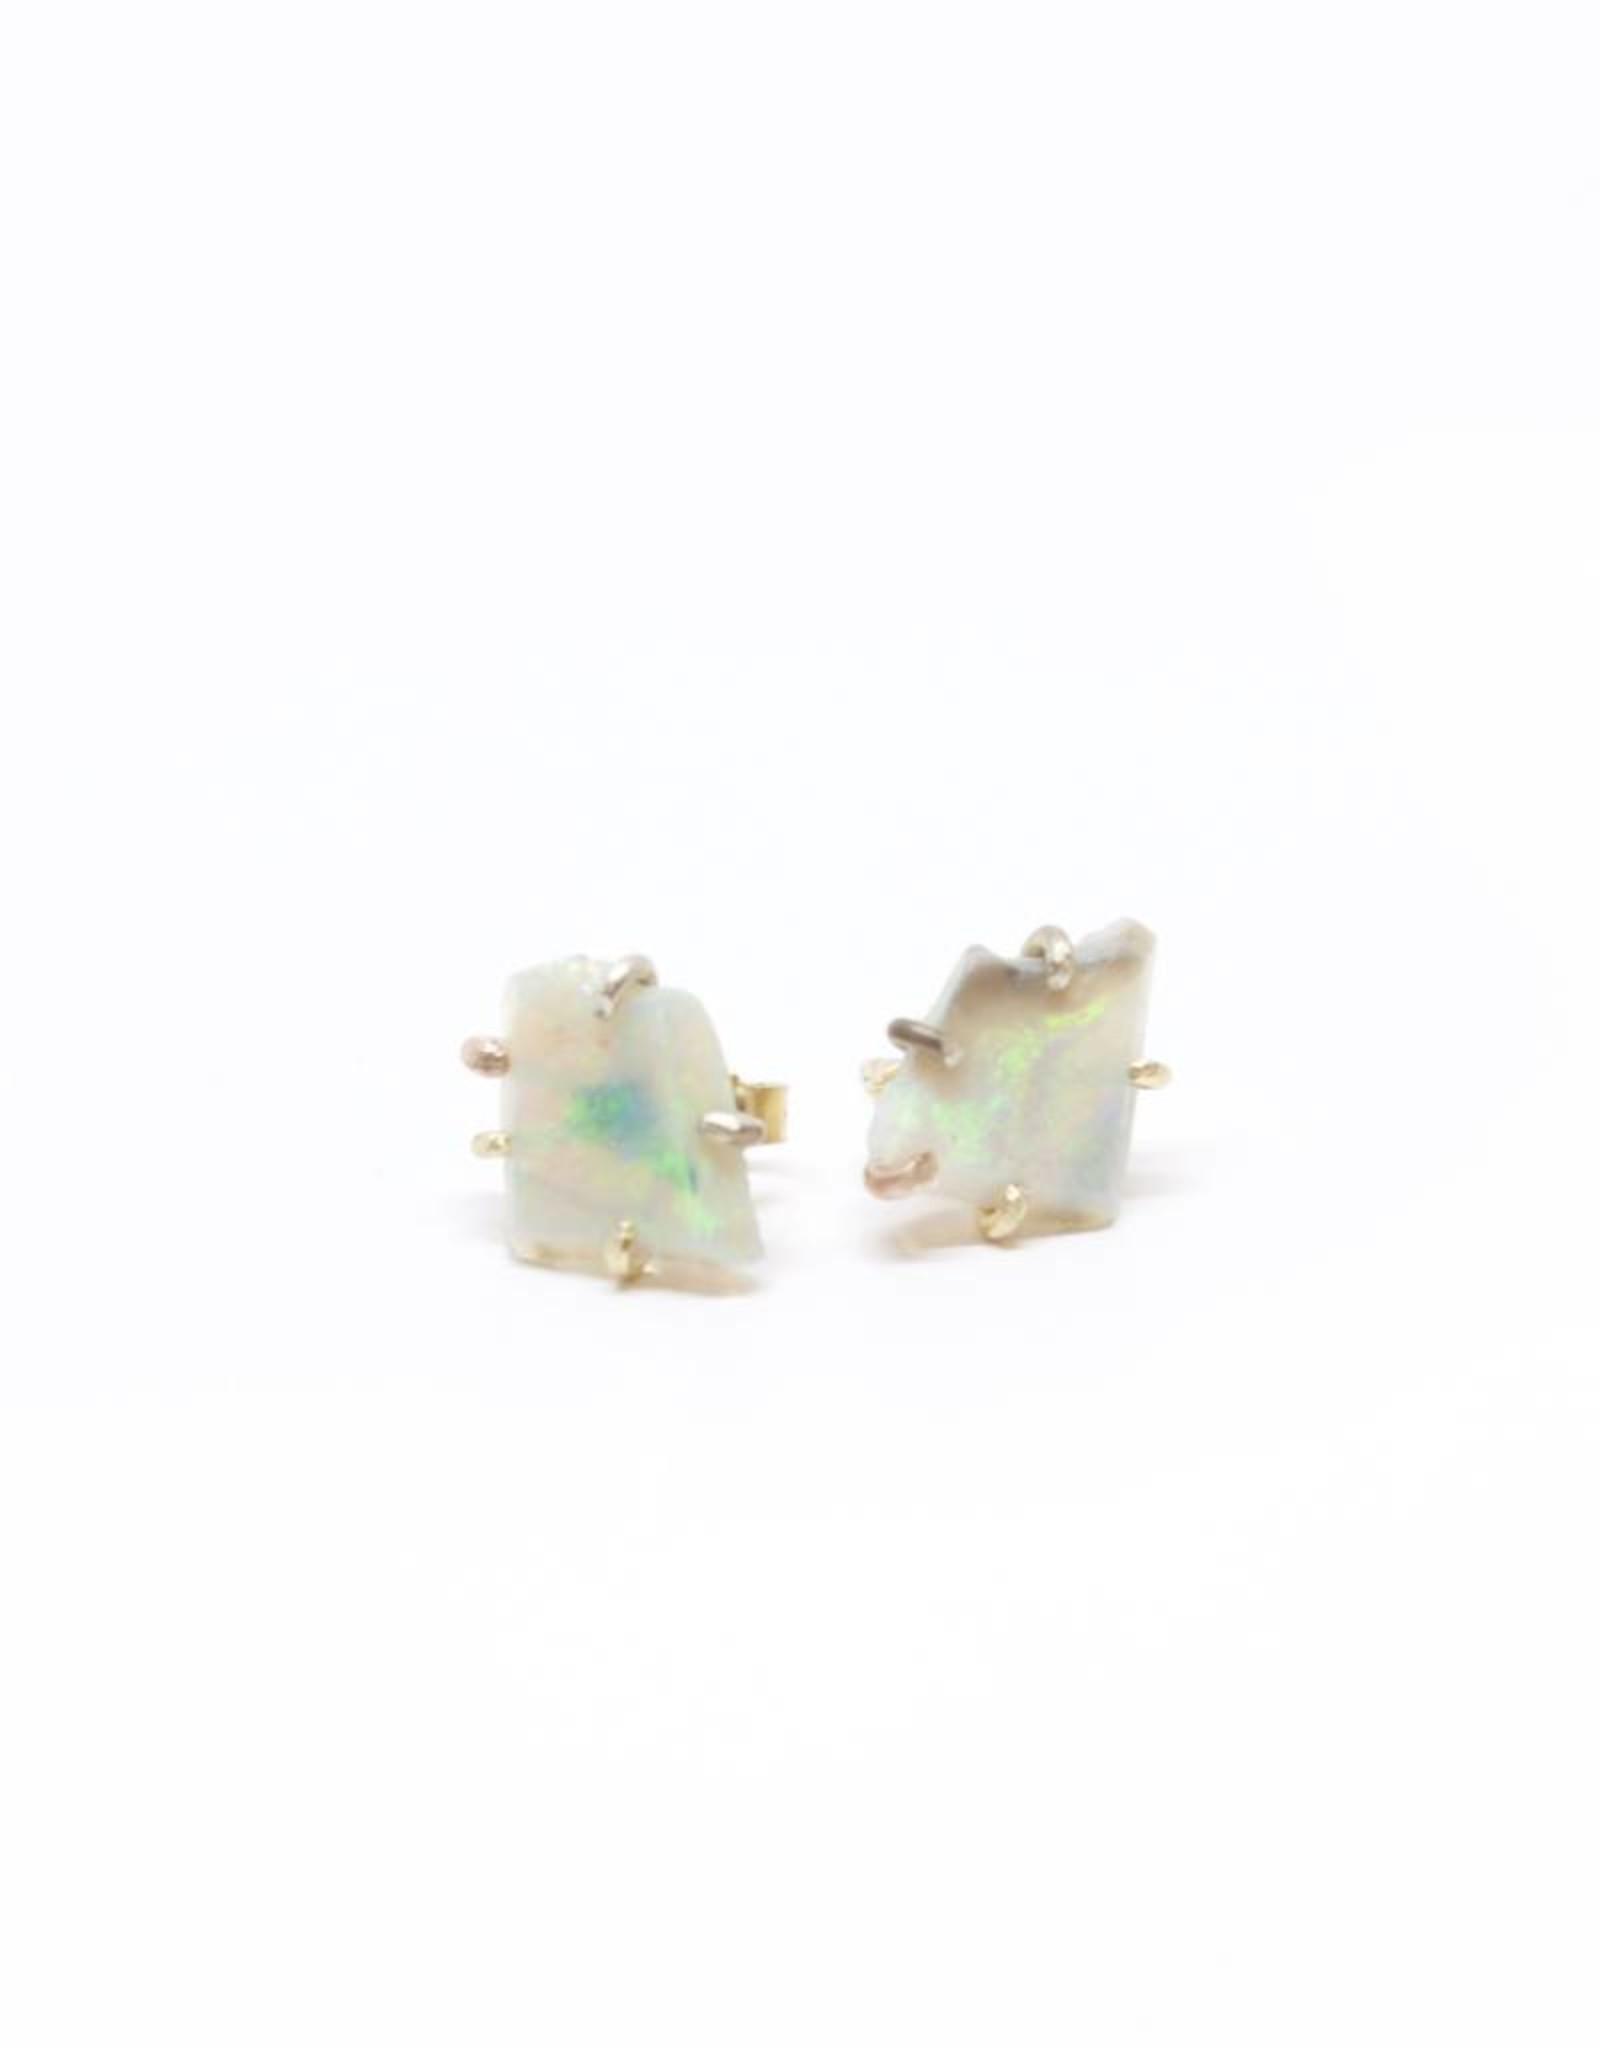 Variance Objects Australian Opal Large Studs